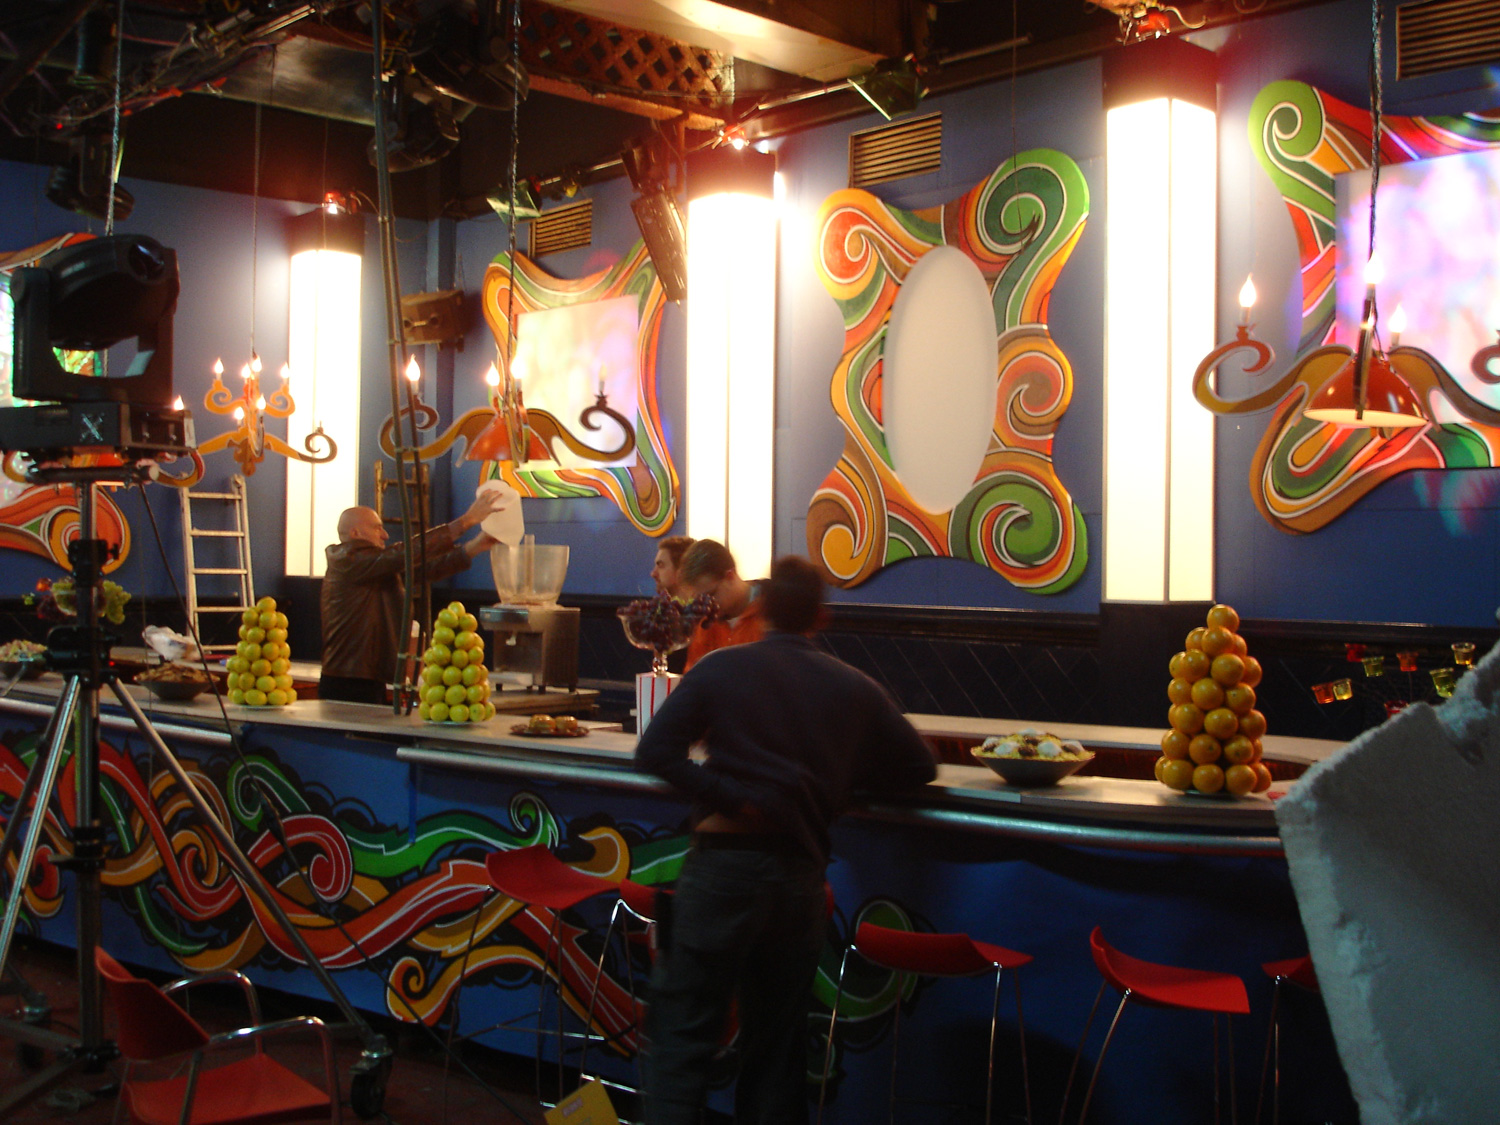 Another view of the Dancing Cat teen night club in Barcelona.